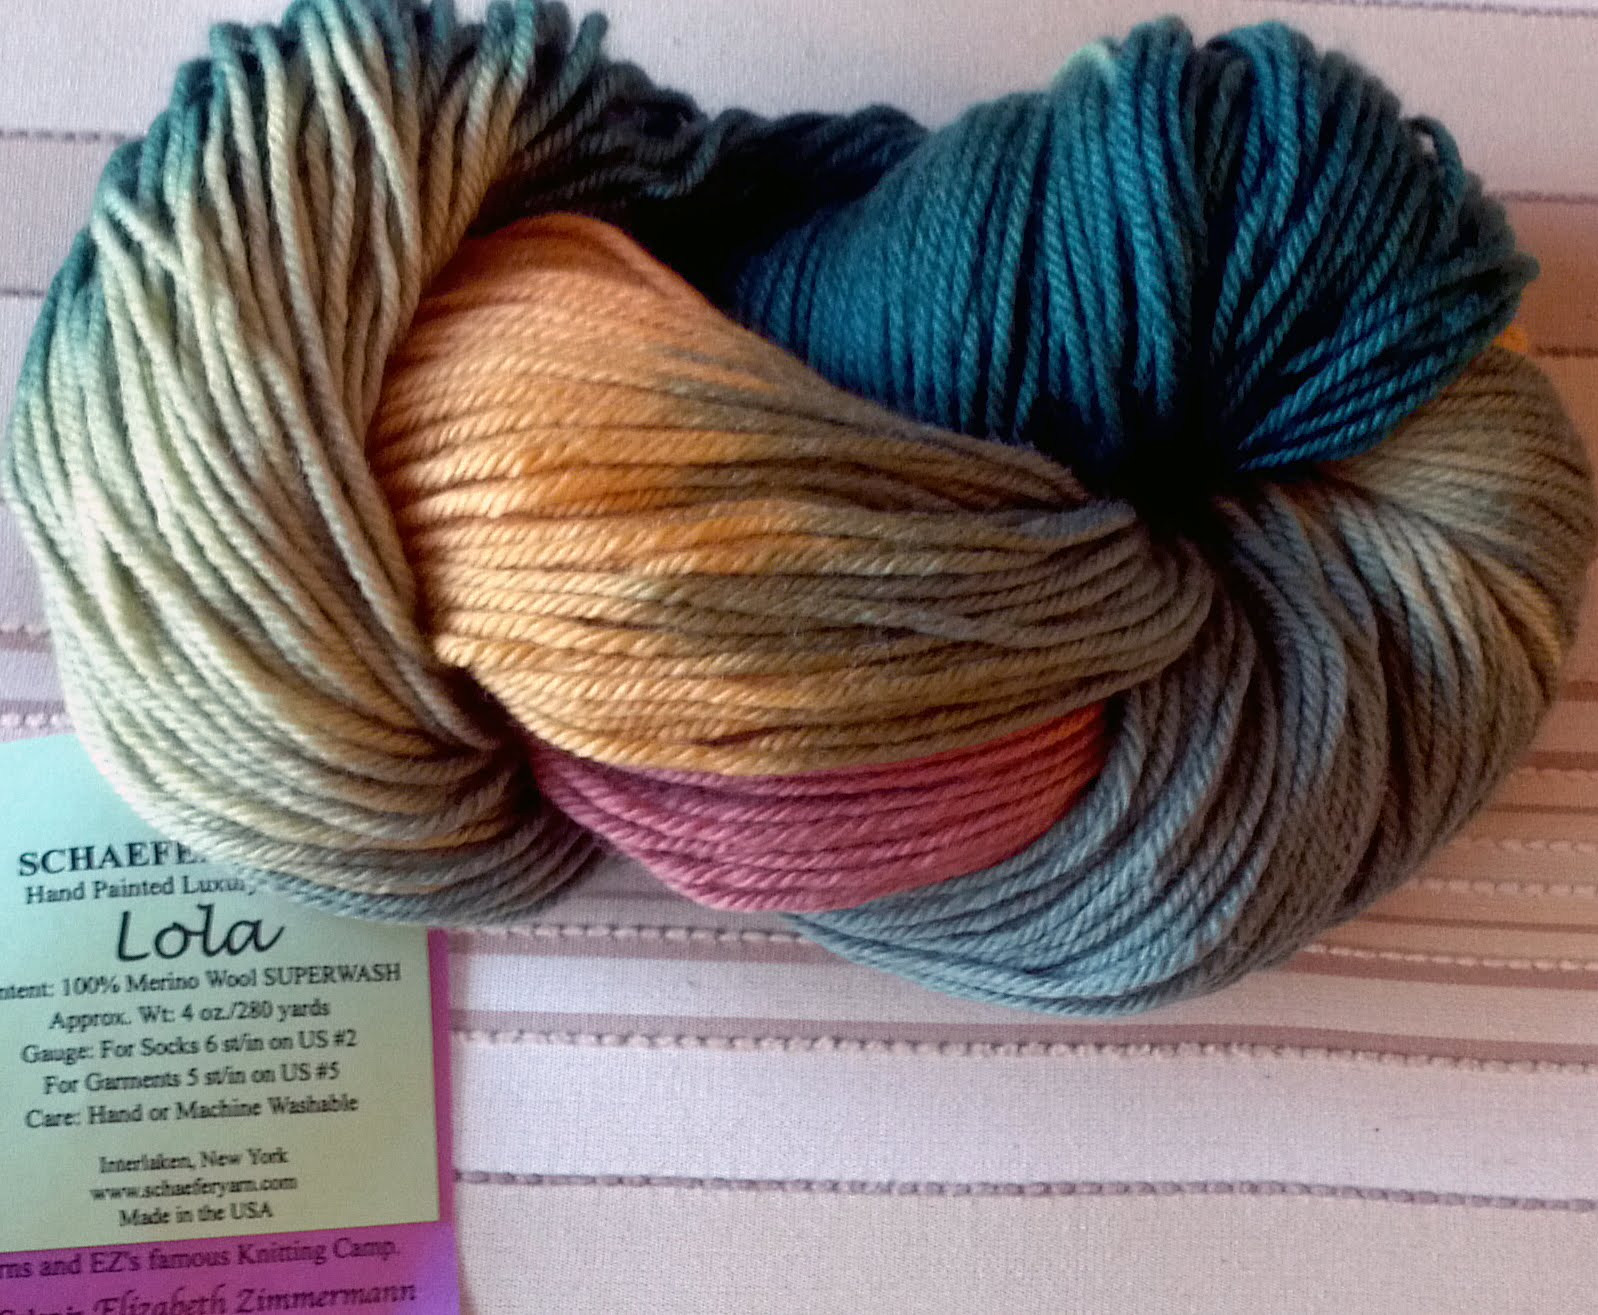 Best Of Knitting with Sandra Singh Discontinued Yarn Sale Yarn Sale Clearance Of Gorgeous 50 Models Yarn Sale Clearance